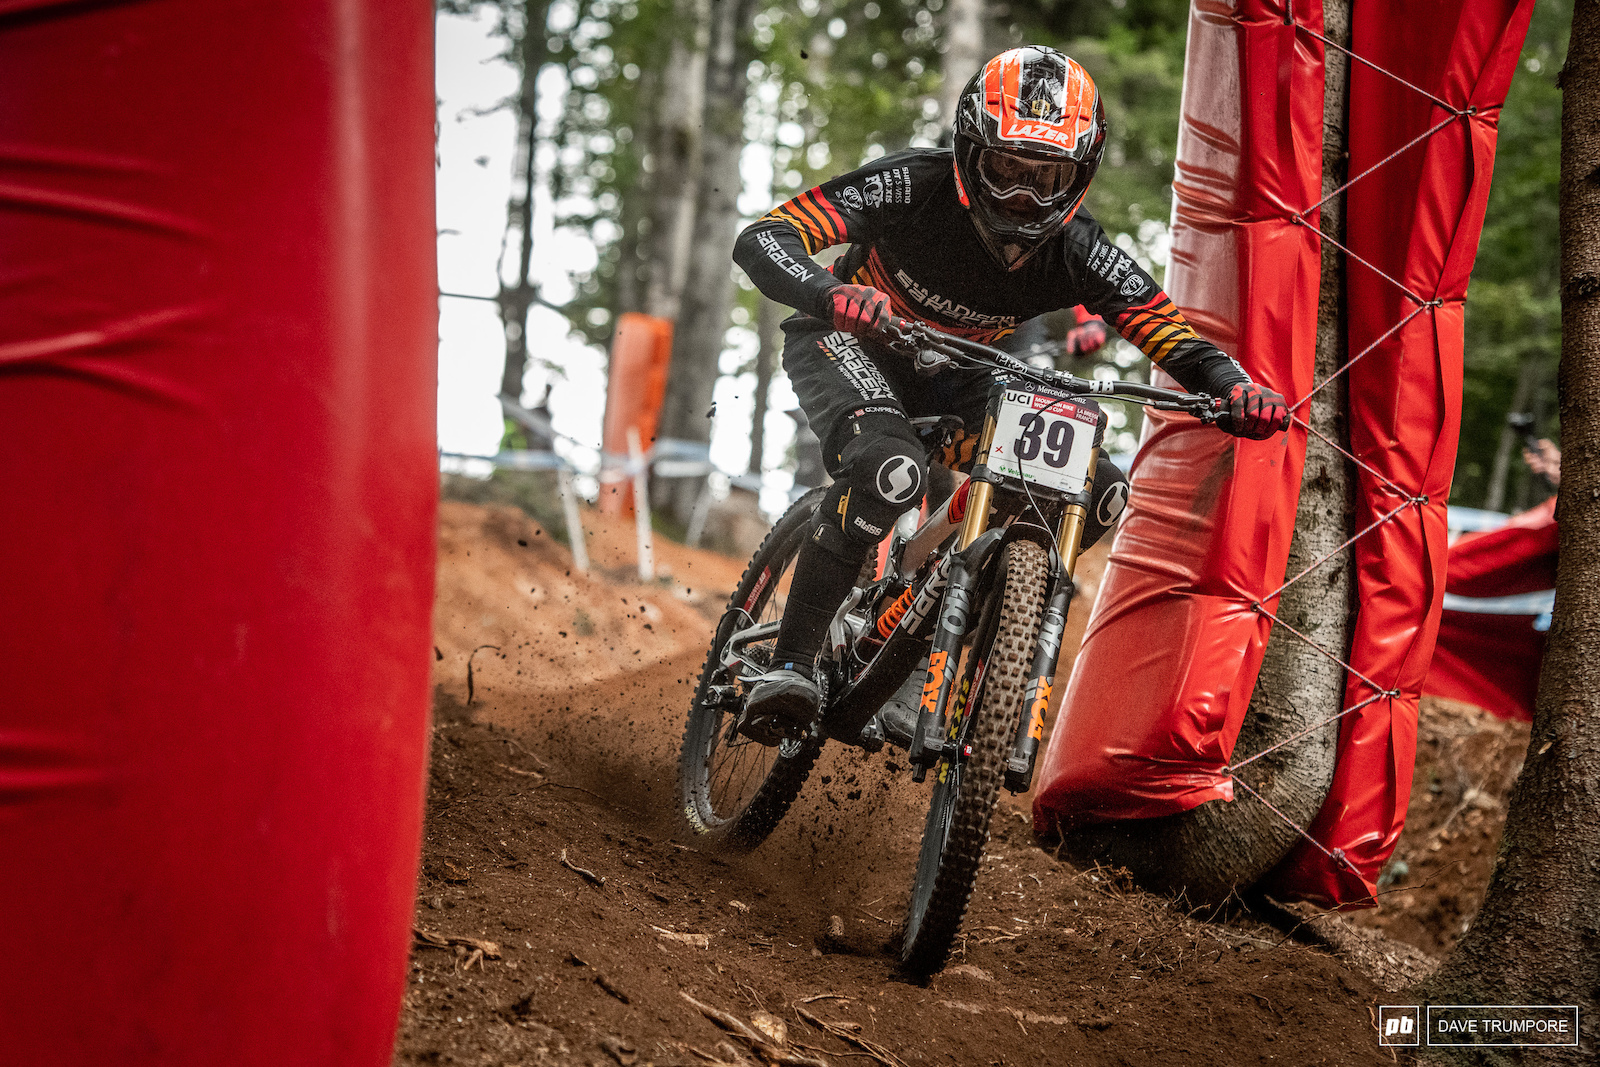 Alex Marin tries to find grip in the loose dirt and off camber roots at the top of the track.